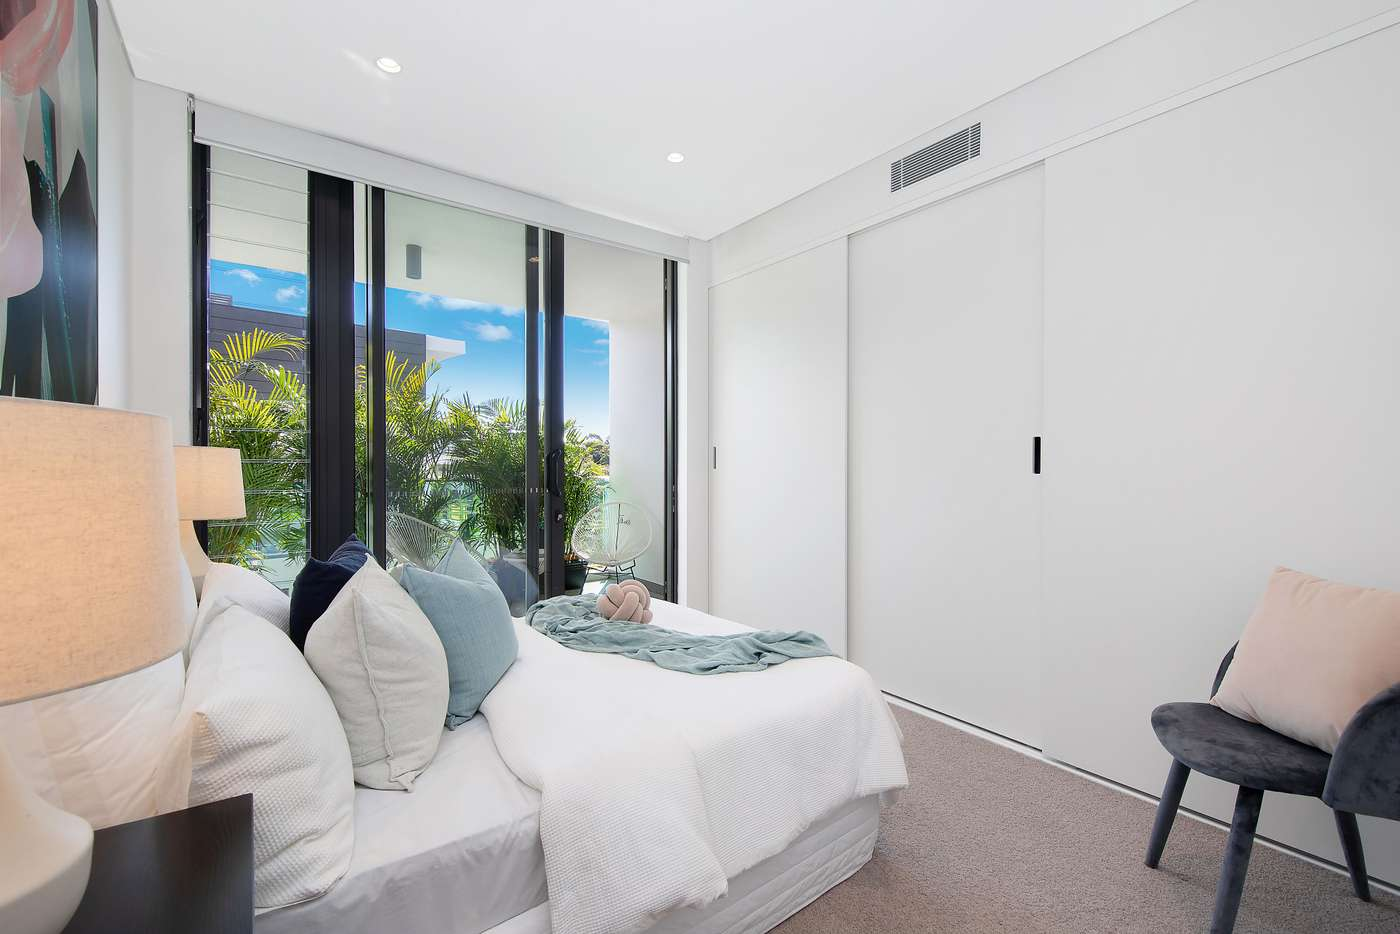 Sixth view of Homely apartment listing, 25/43 Lindfield Avenue, Lindfield NSW 2070